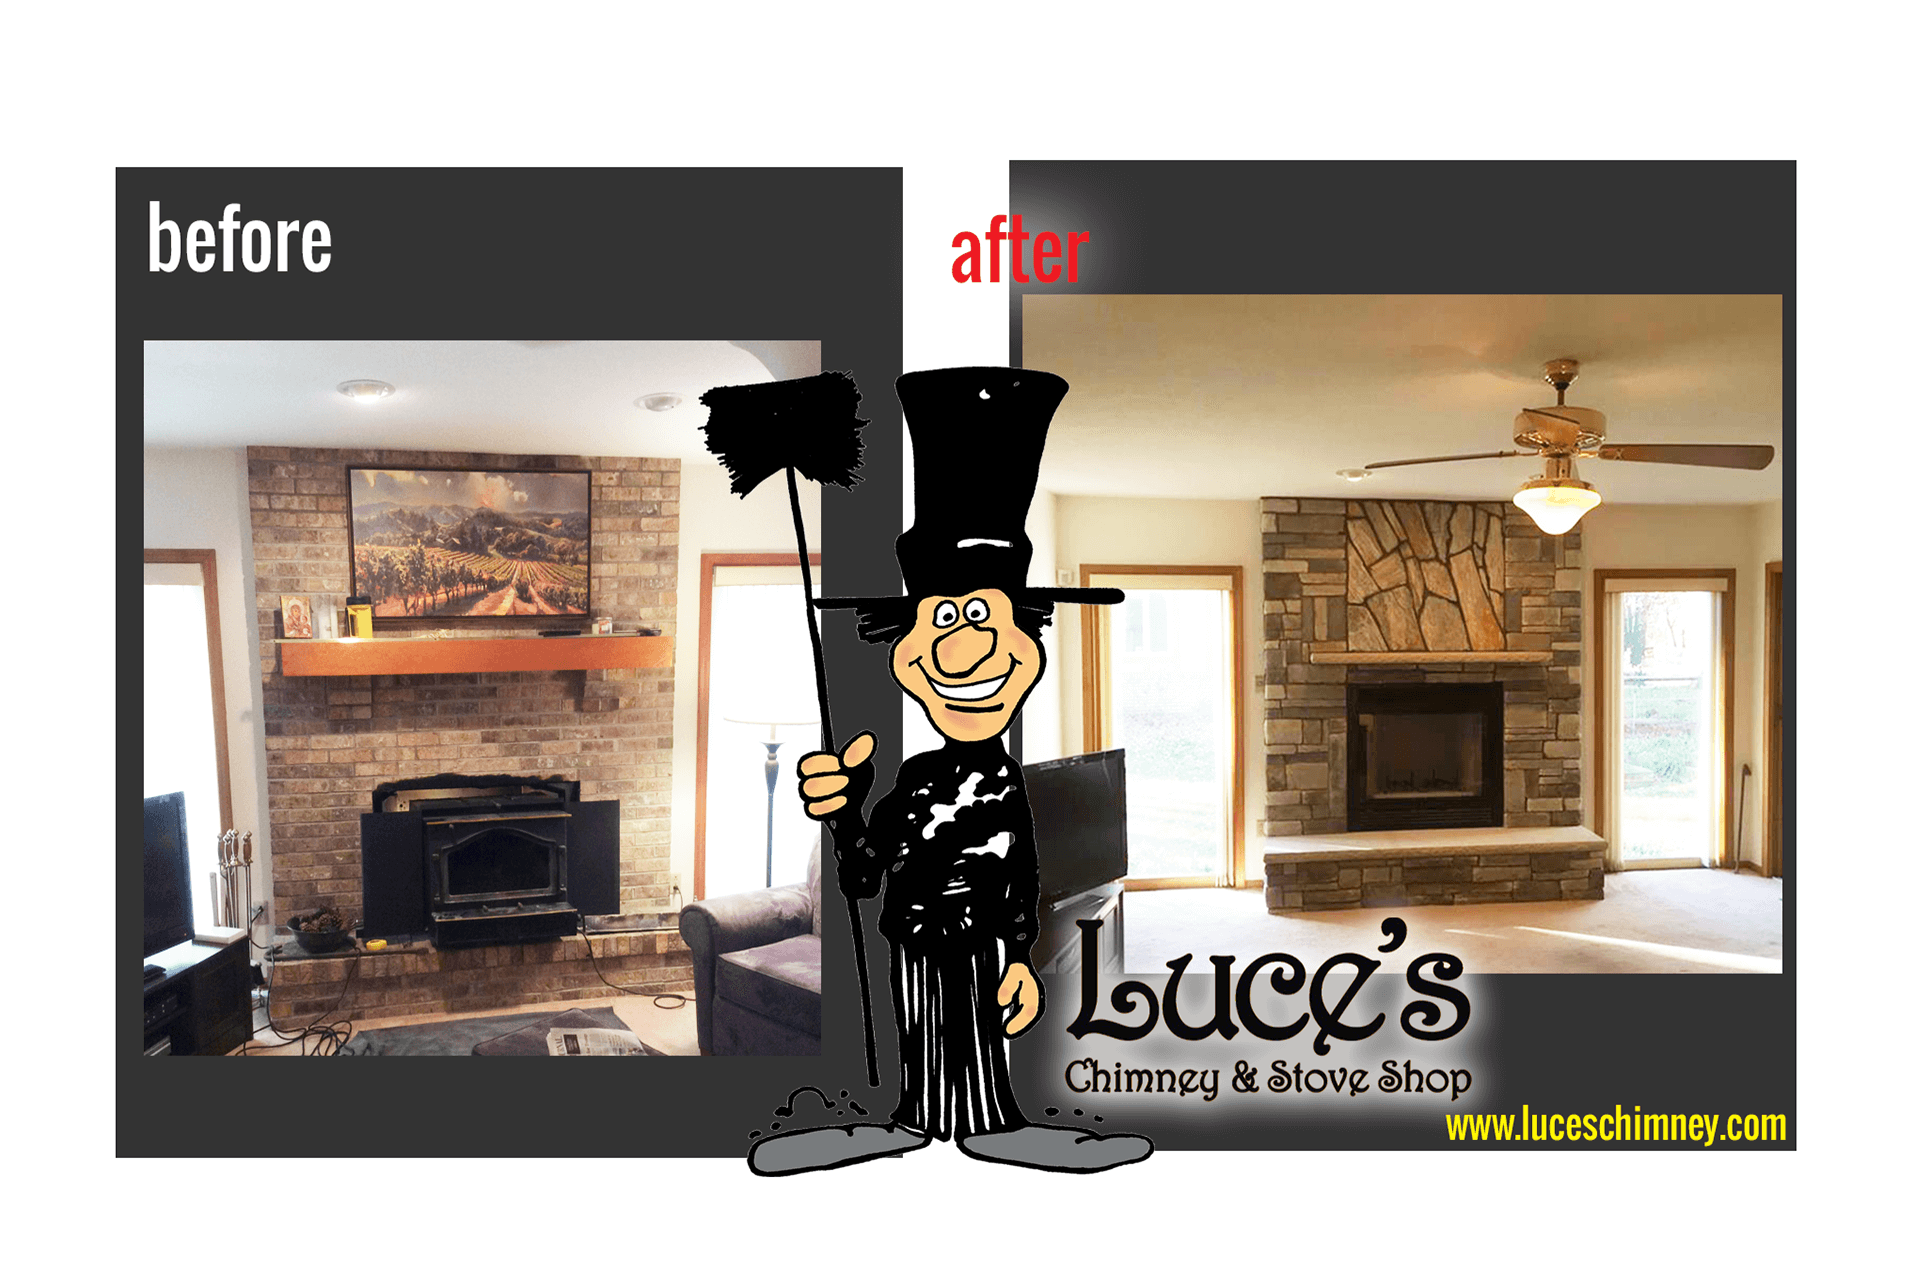 Custom fireplace stonework construction, before and after pictures for fireplace remodels, by Luce's Chimney & Stove Shop.